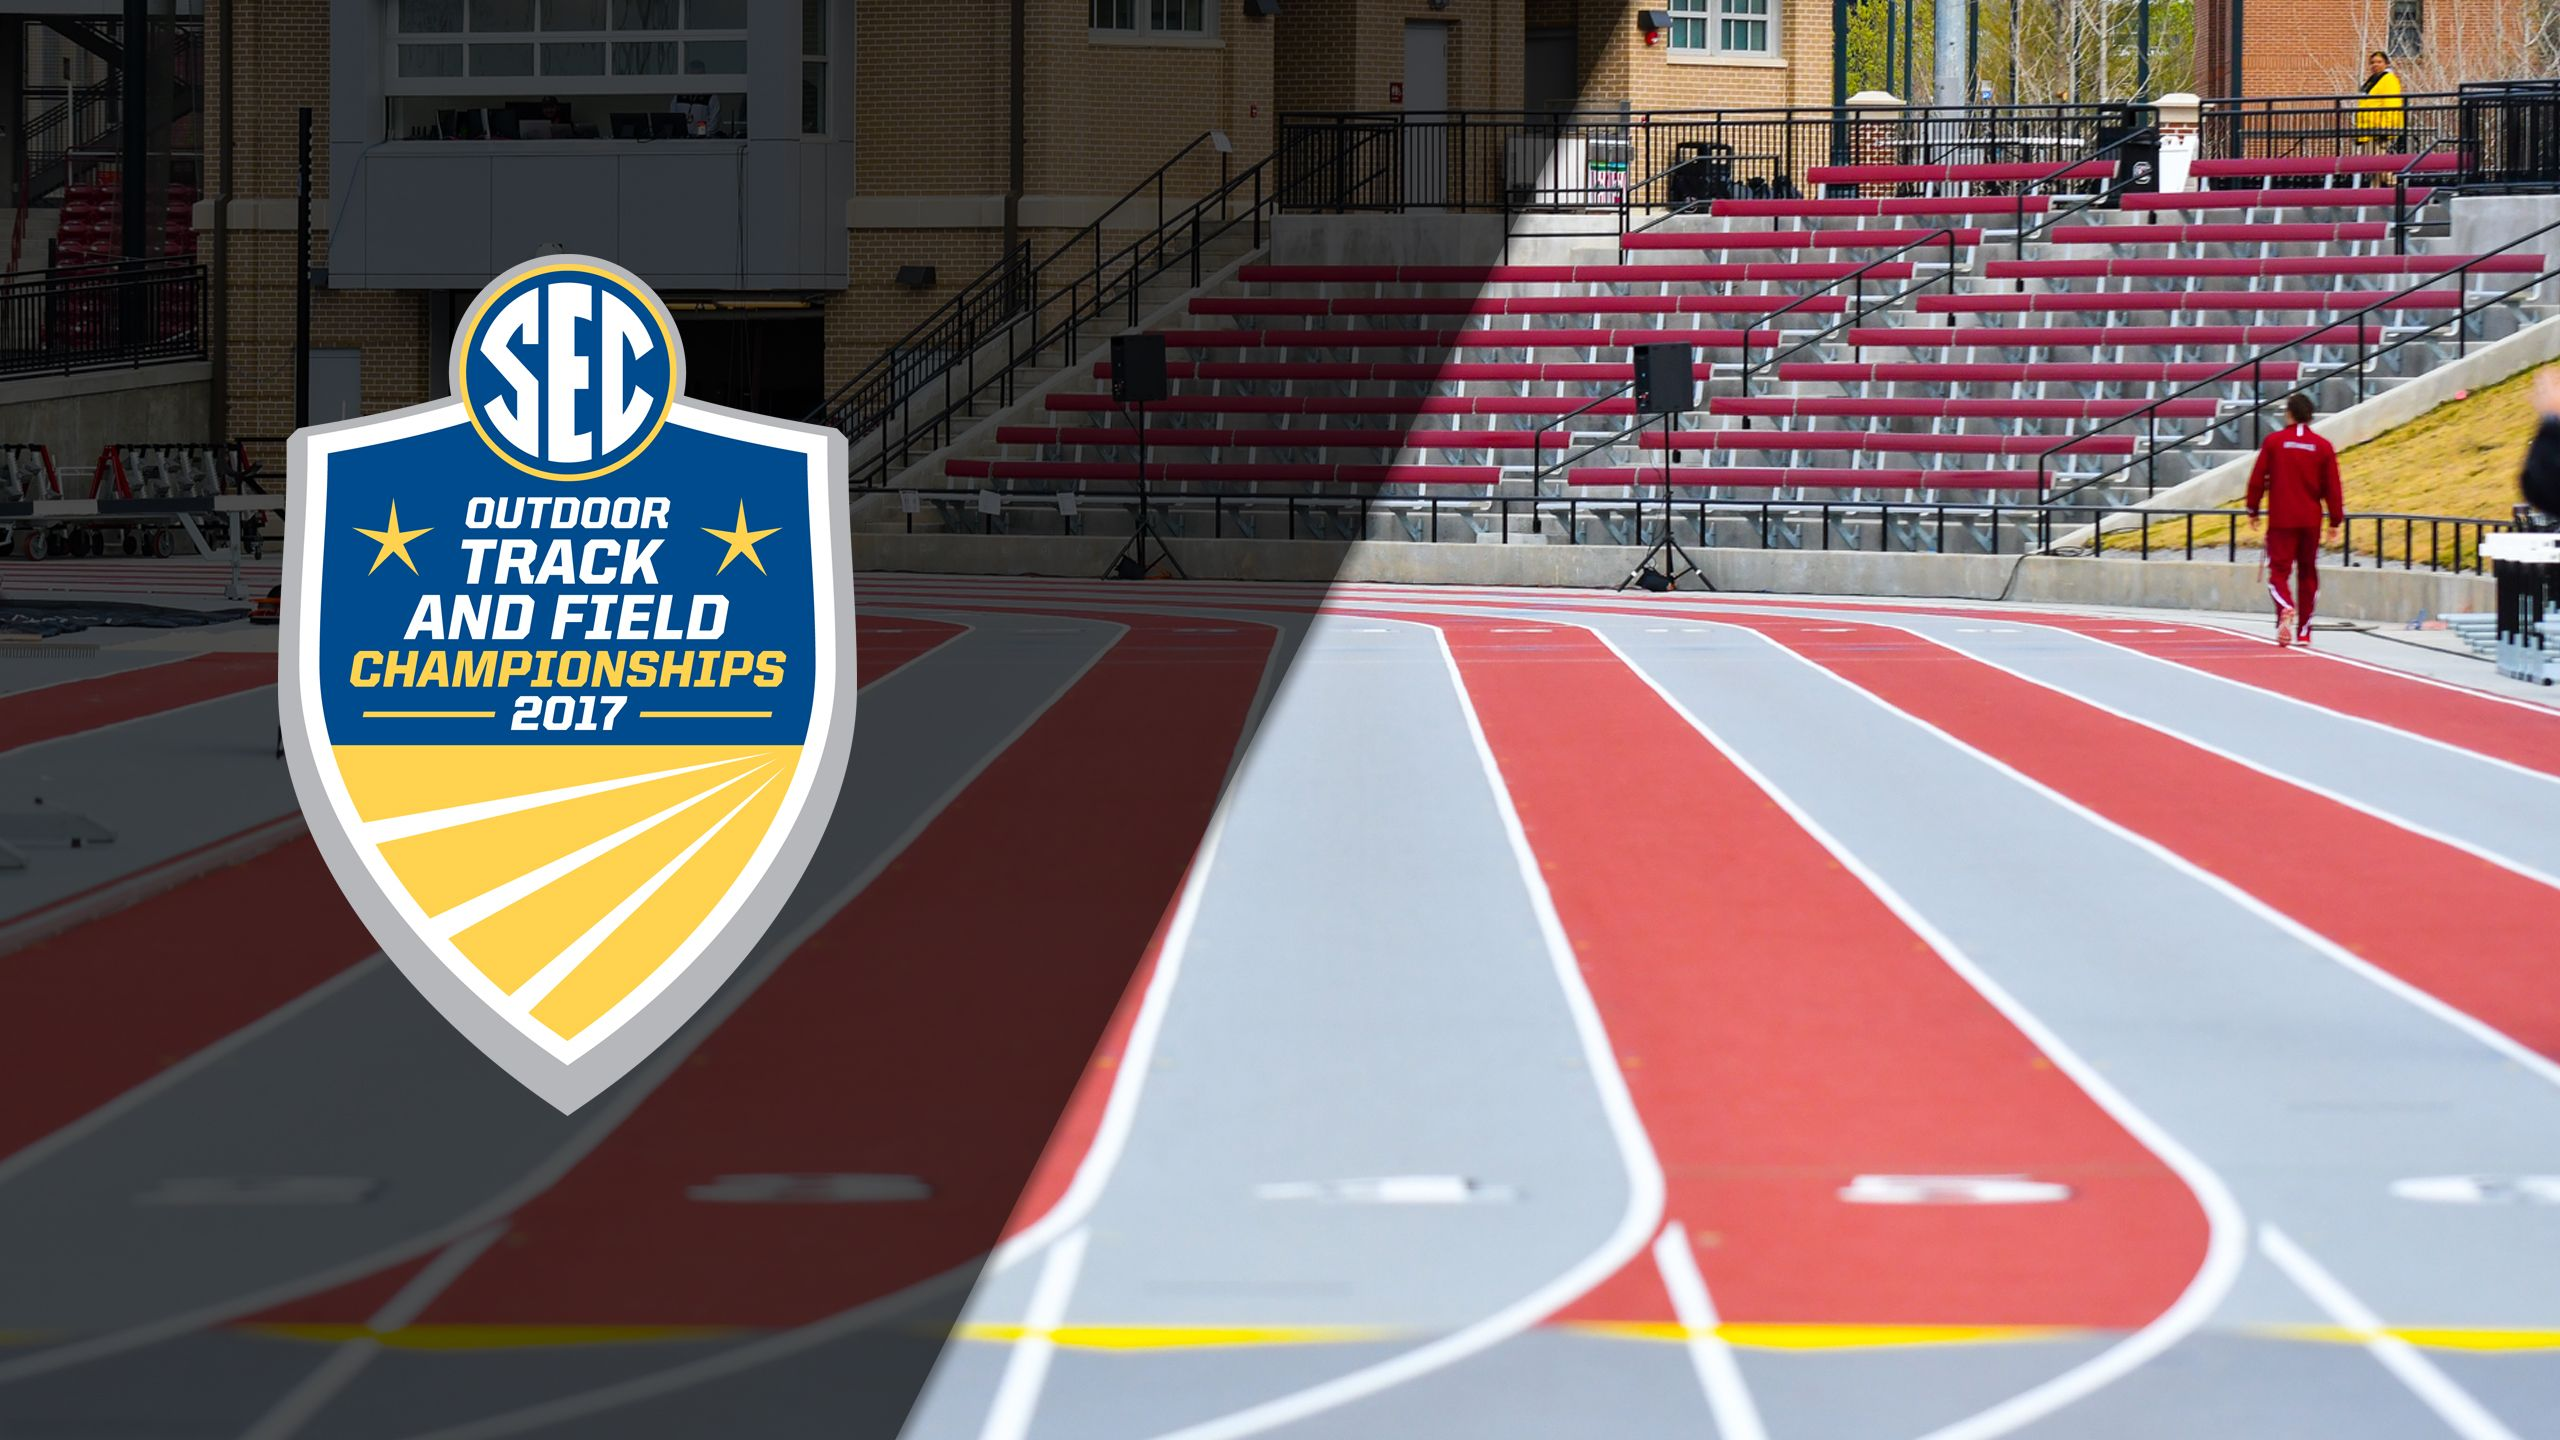 2017 SEC Outdoor Track & Field Championship